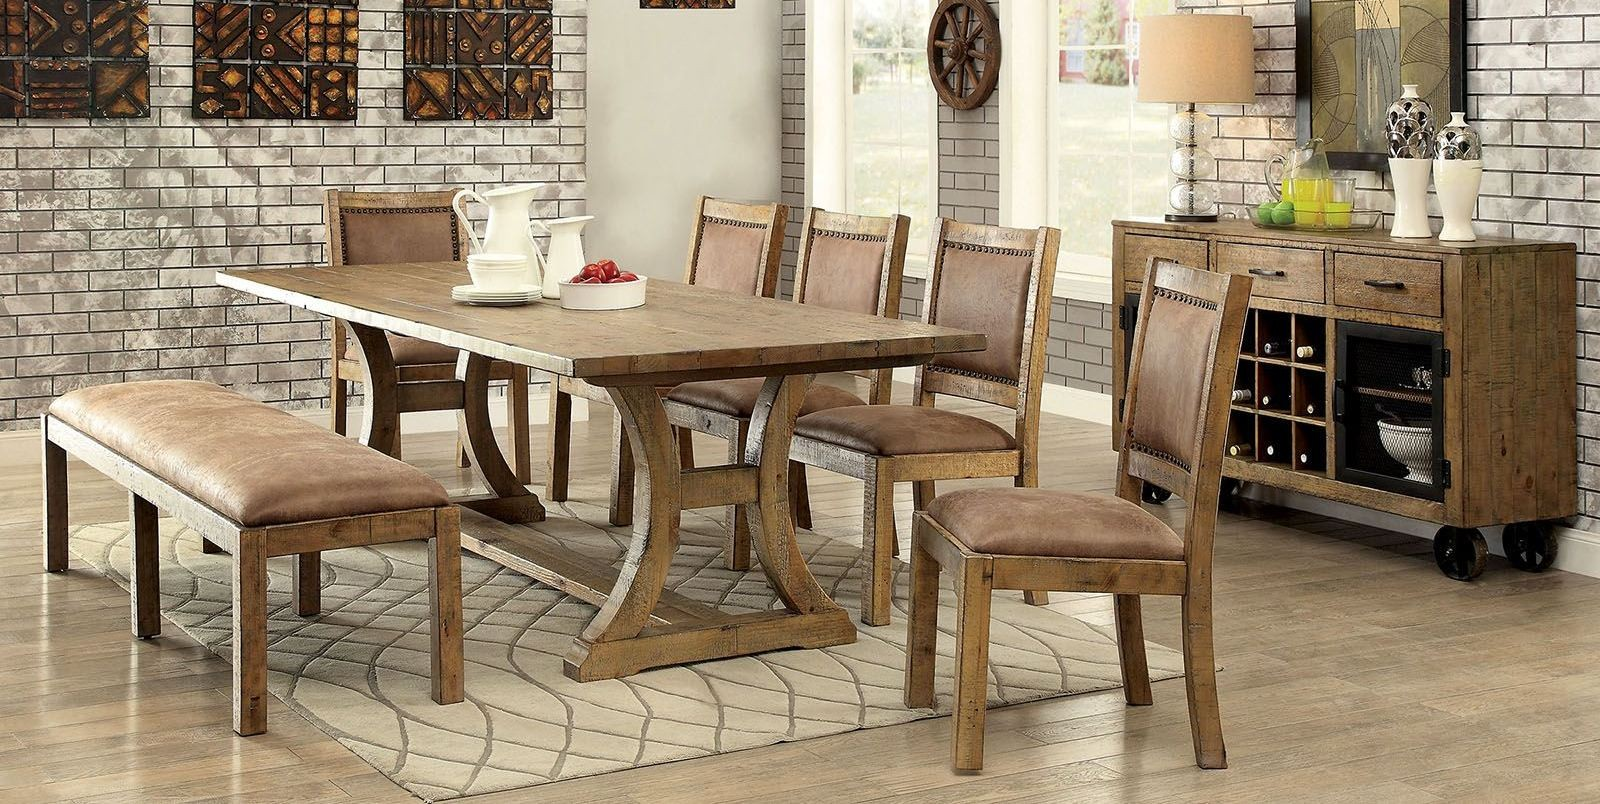 Gianna rustic pine extendable rectangular dining room set for Dining room furnishings